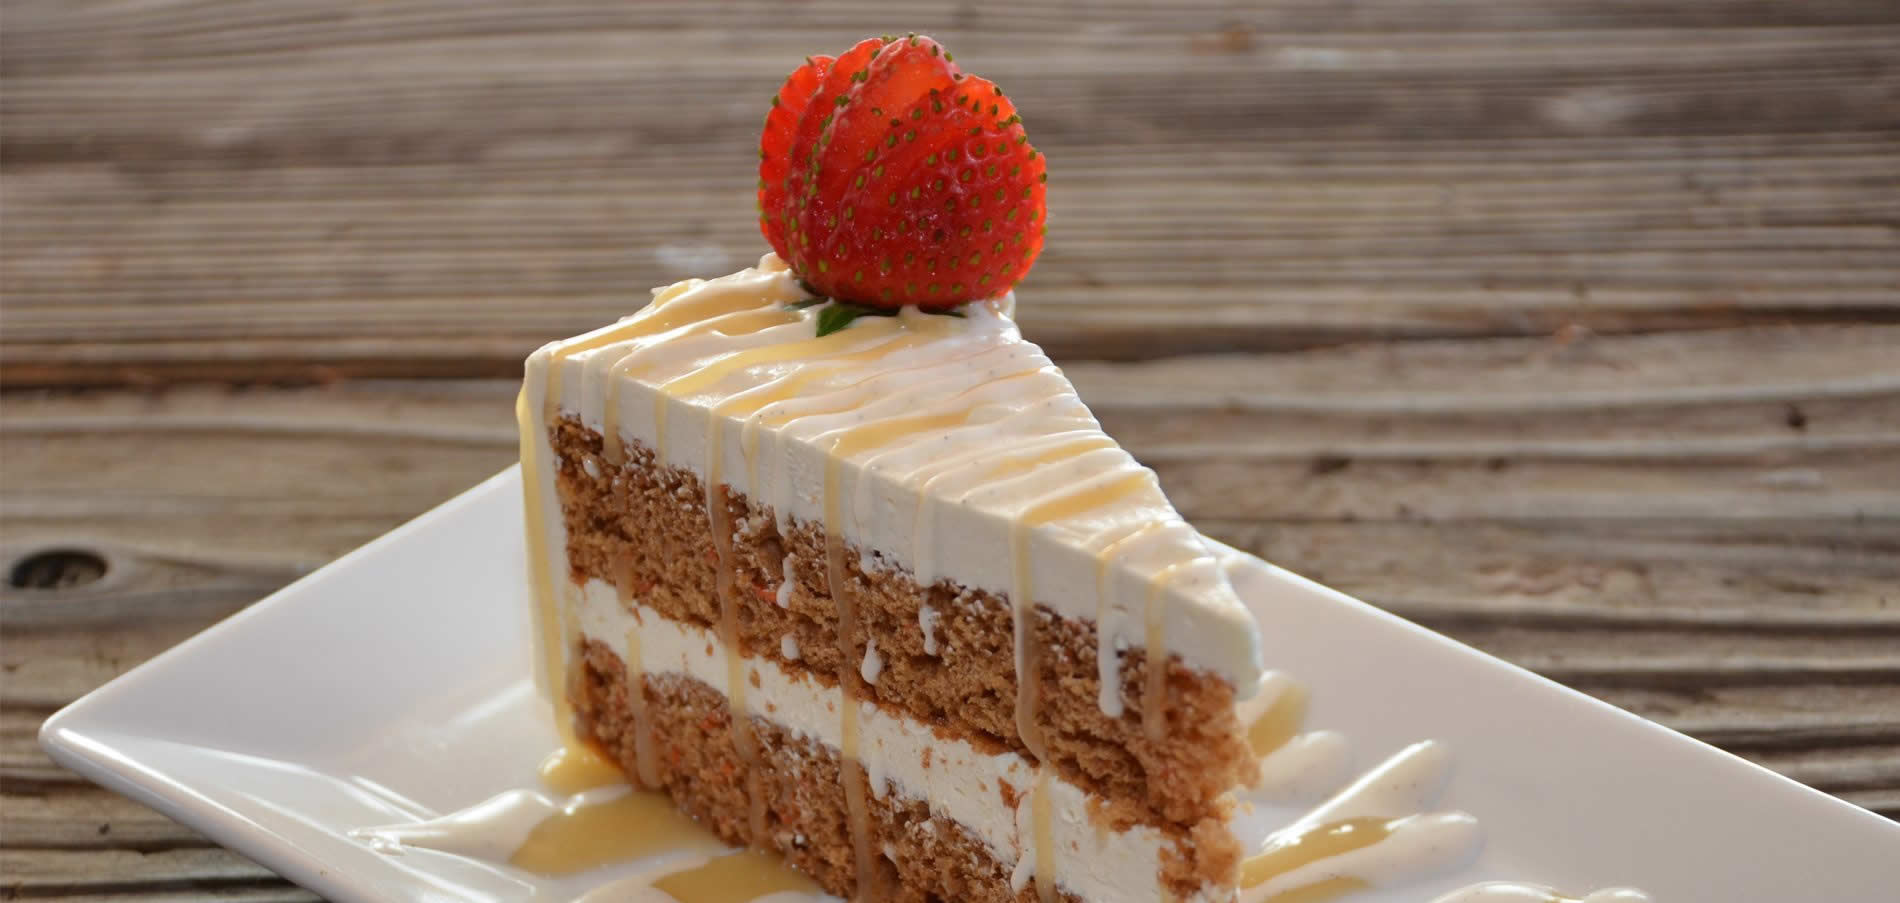 mendocino ravens restaurant desserts - carrot cake with strawberry